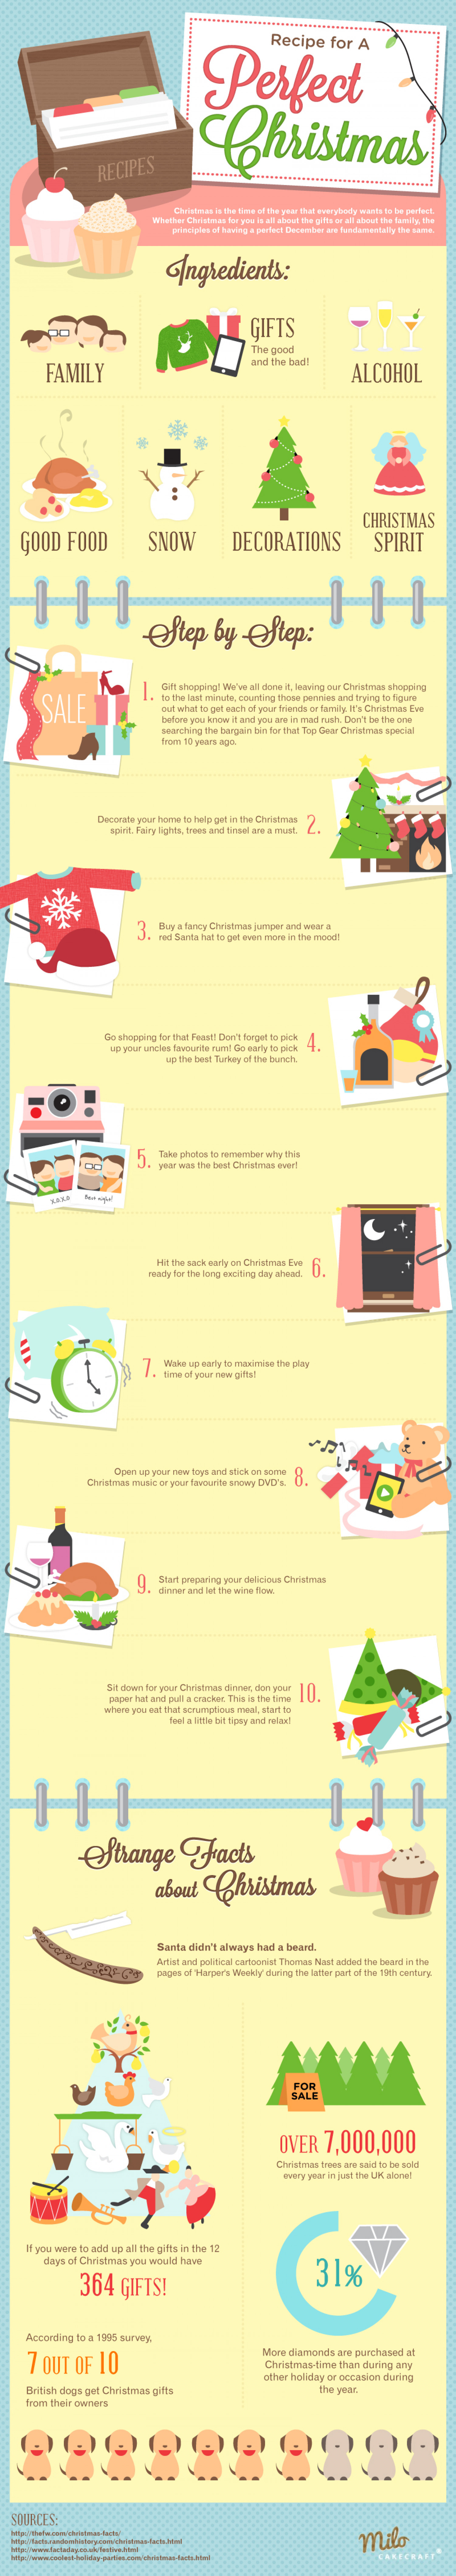 Recipe for a Perfect Christmas Infographic